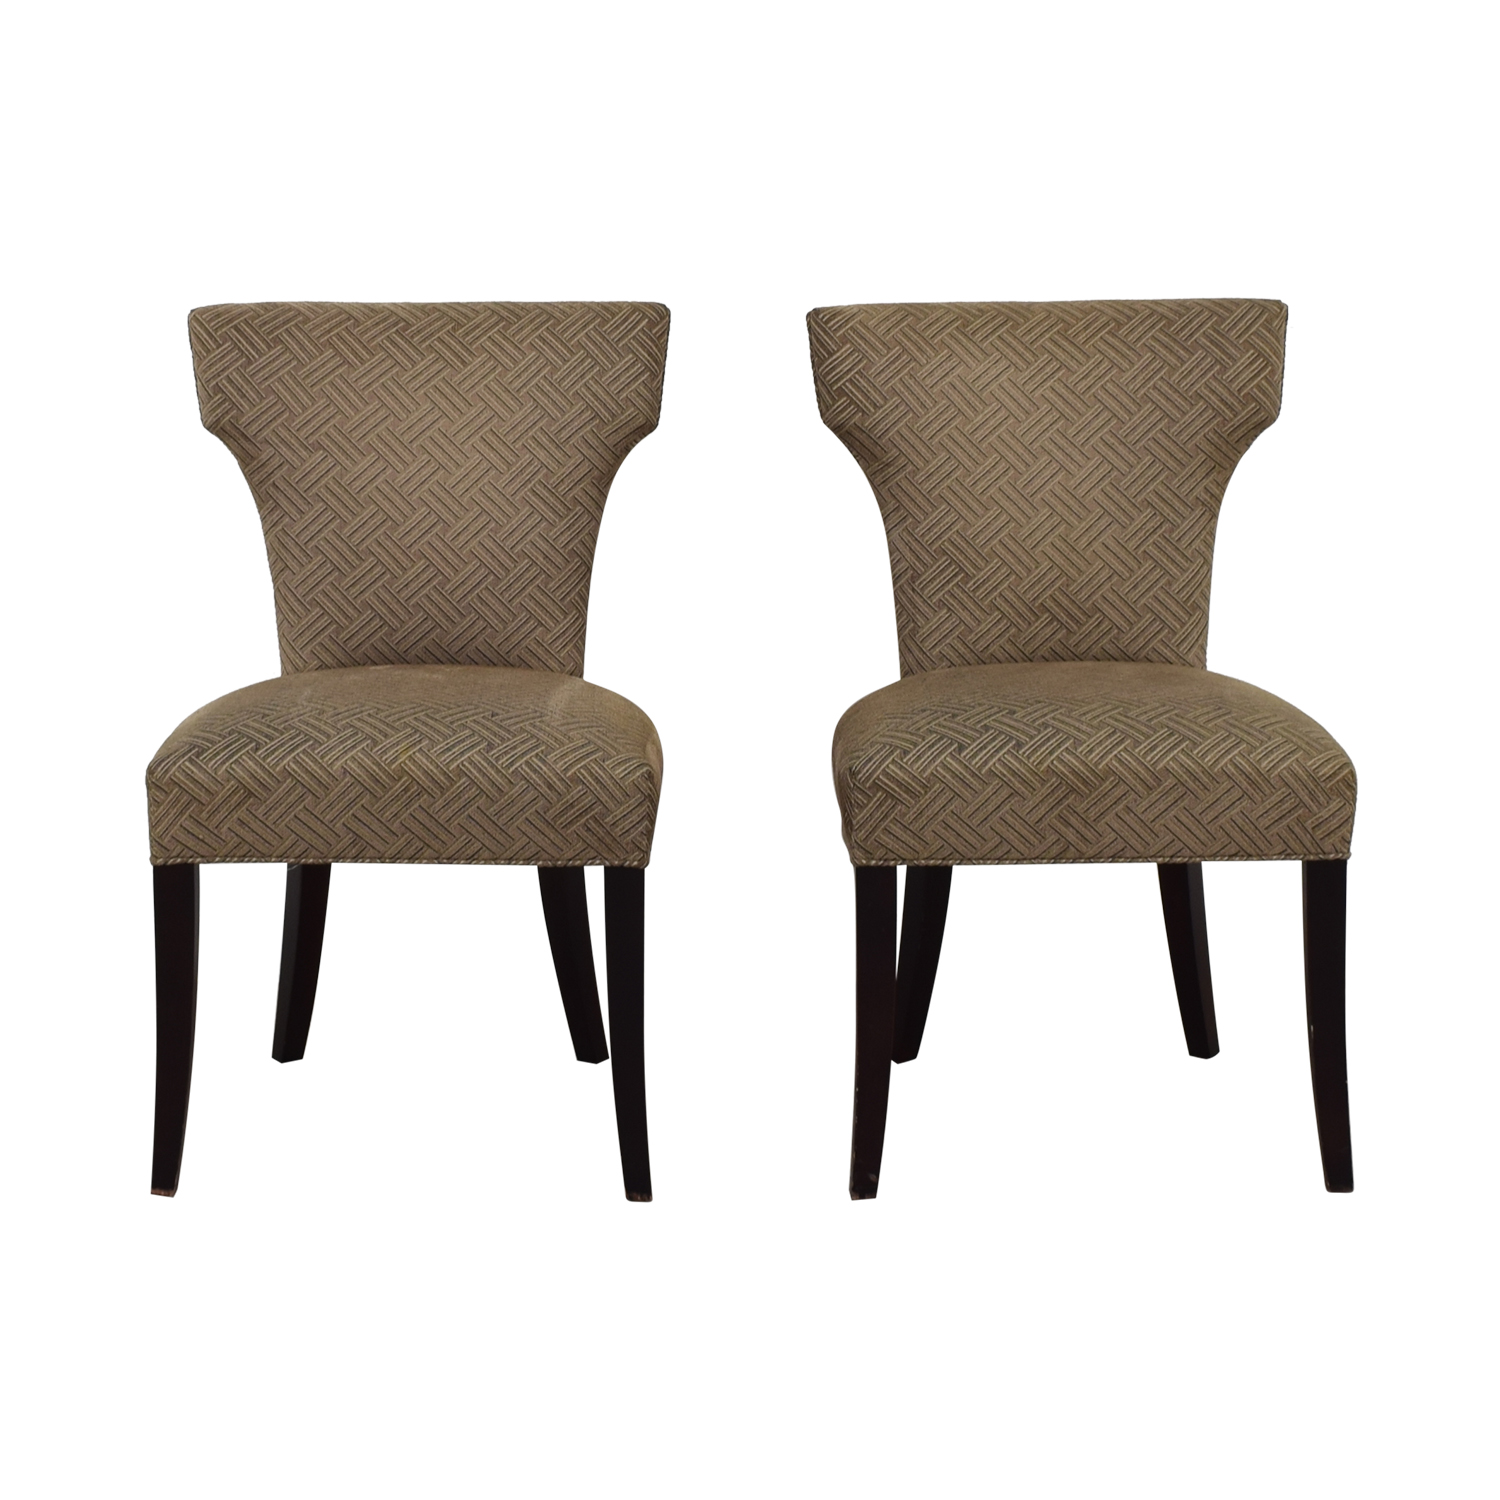 Crate & Barrel Crate & Barrel Sasha Upholstered Dining Chairs dimensions